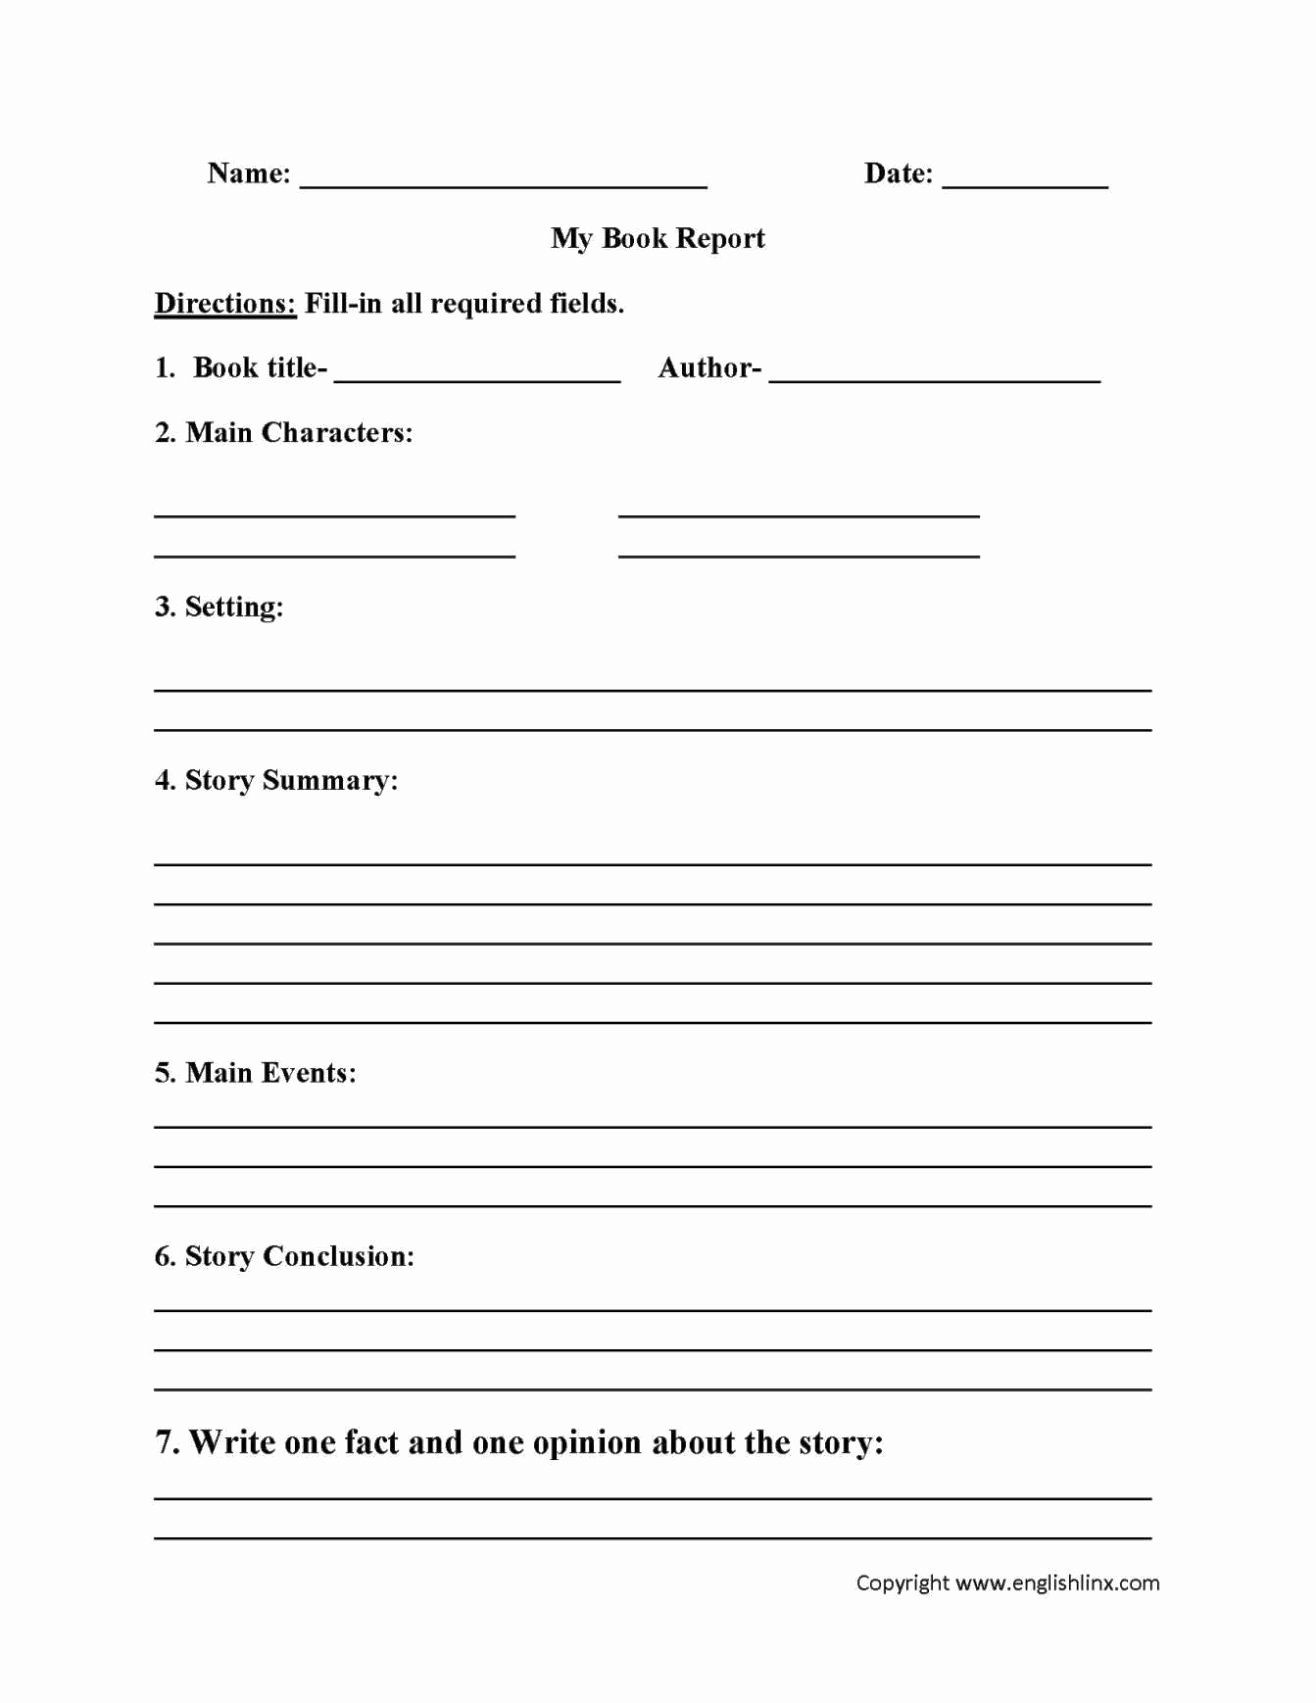 Book Review Template Pdf Unique Student Book Review Template Sampletemplatess